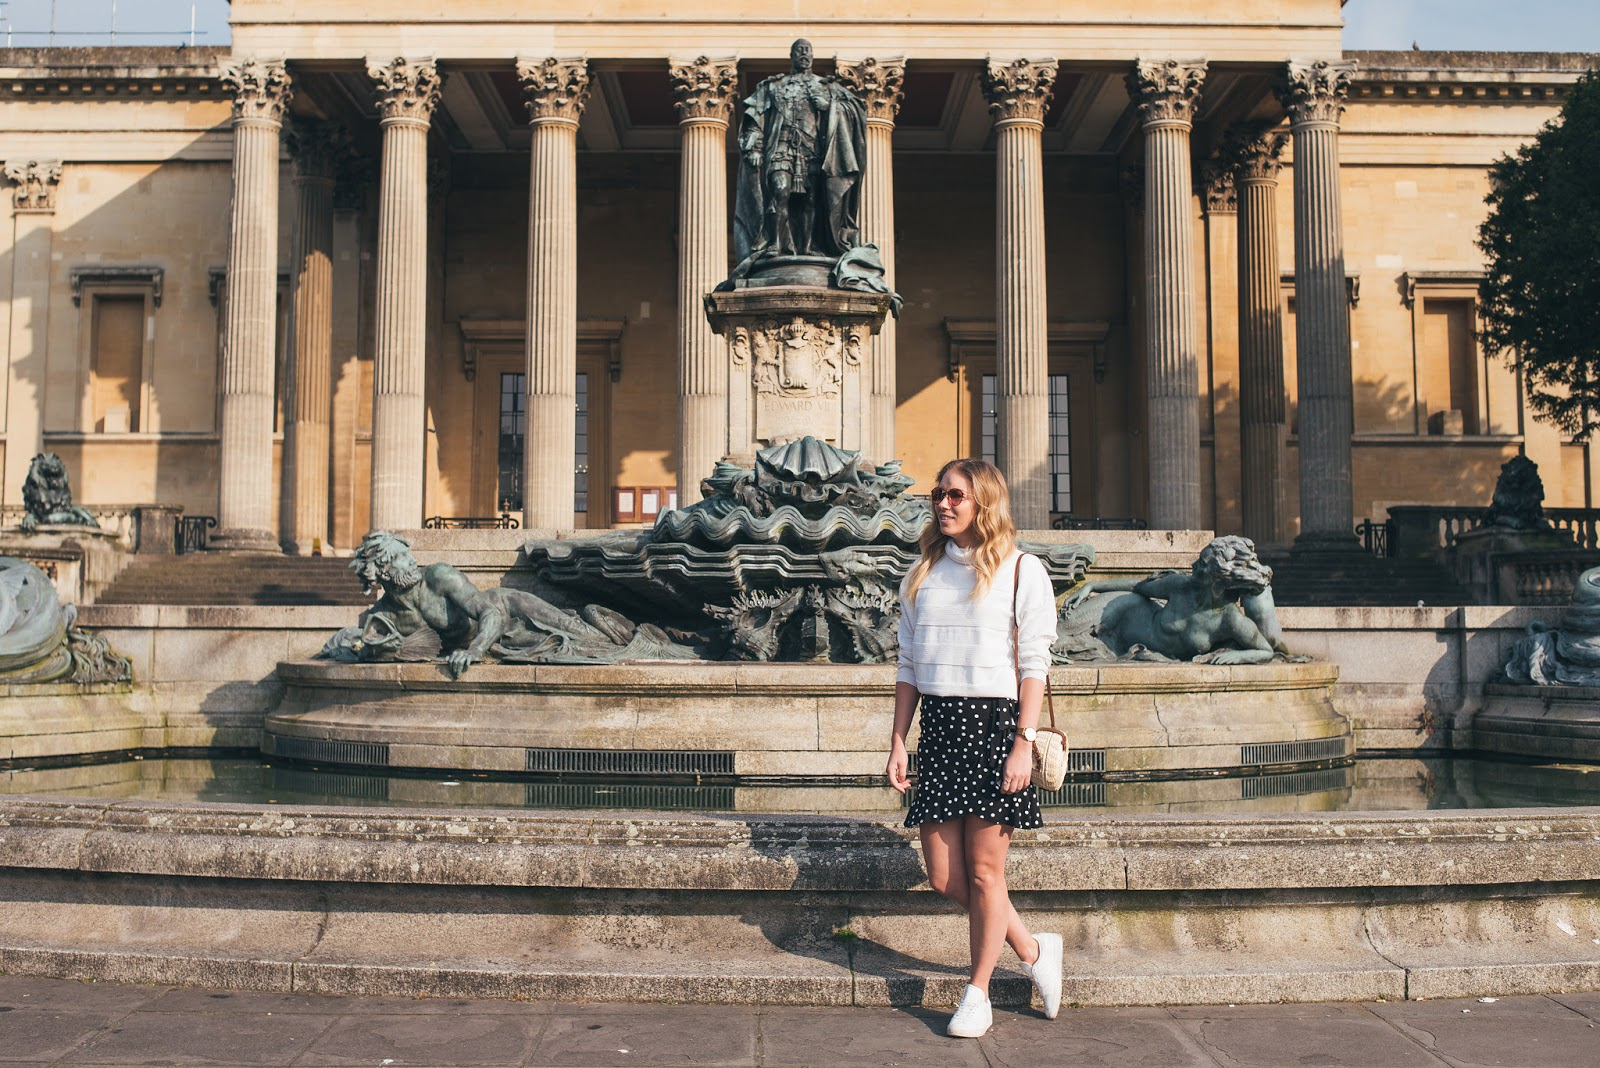 Rachel Emily standing outside of Victoria Rooms Pillars in spring summer transitional outfit